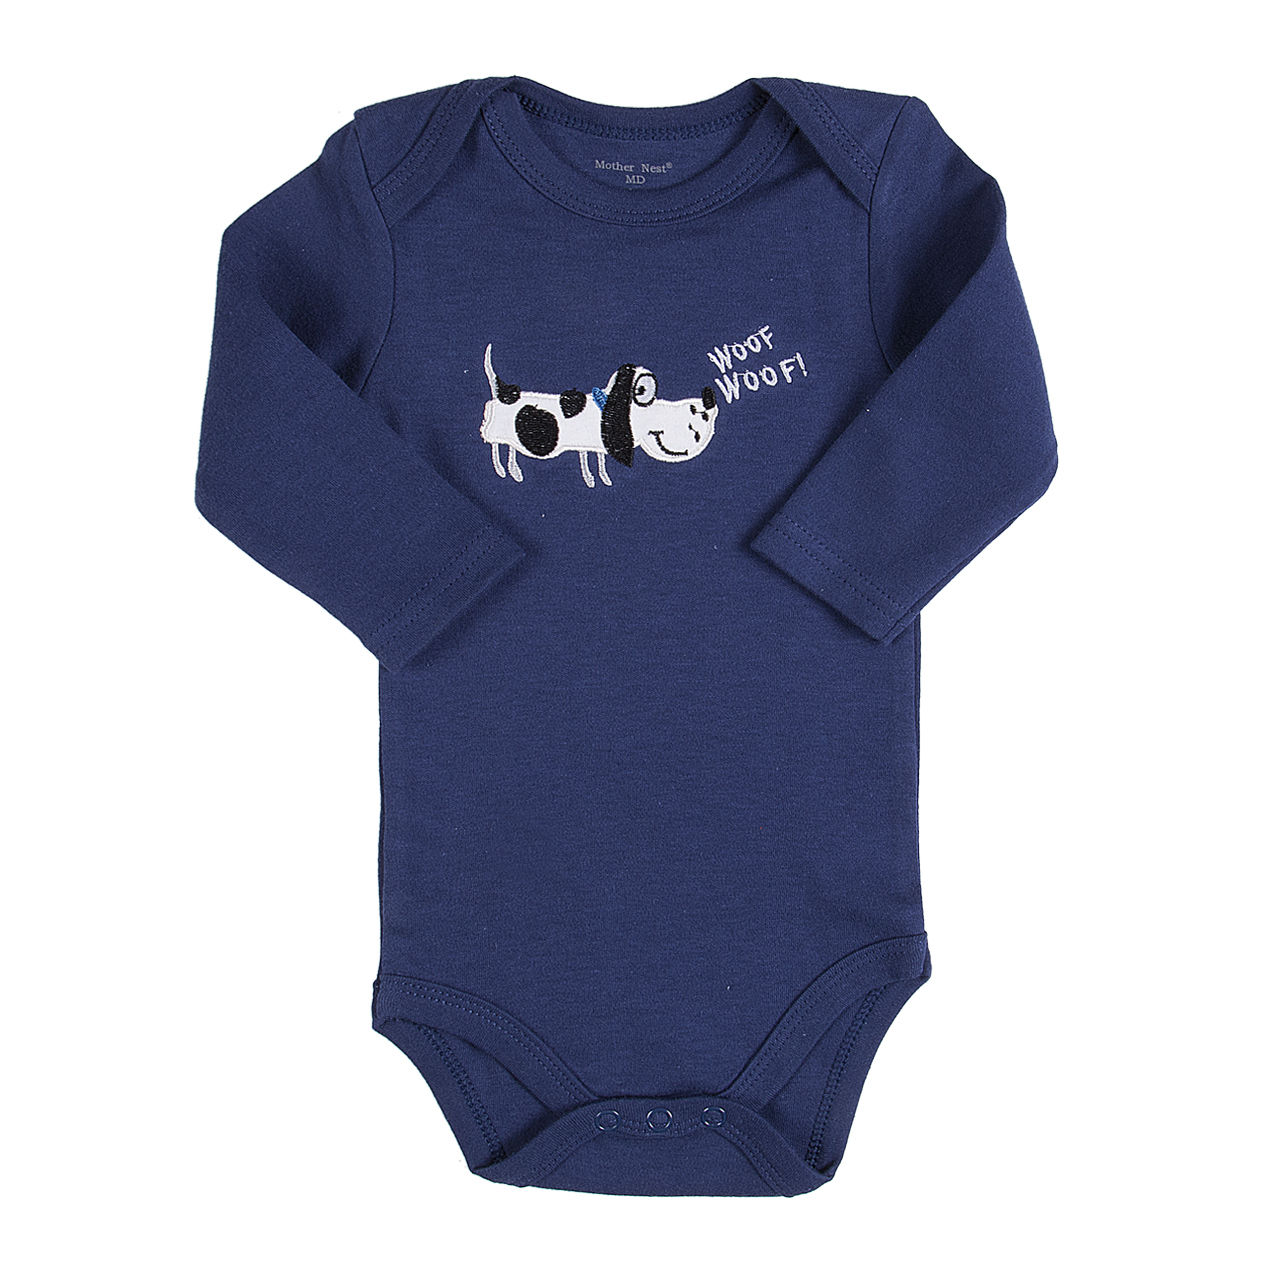 Kids Newborn Baby Boys Girls Long Sleeve Cotton Blue Dog Printed Romper Jumpsuit Clothes Outfit One Pieces Size 0-12M newborn infant warm baby boy girl clothes cotton long sleeve hooded romper jumpsuit one pieces outfit tracksuit 0 24m